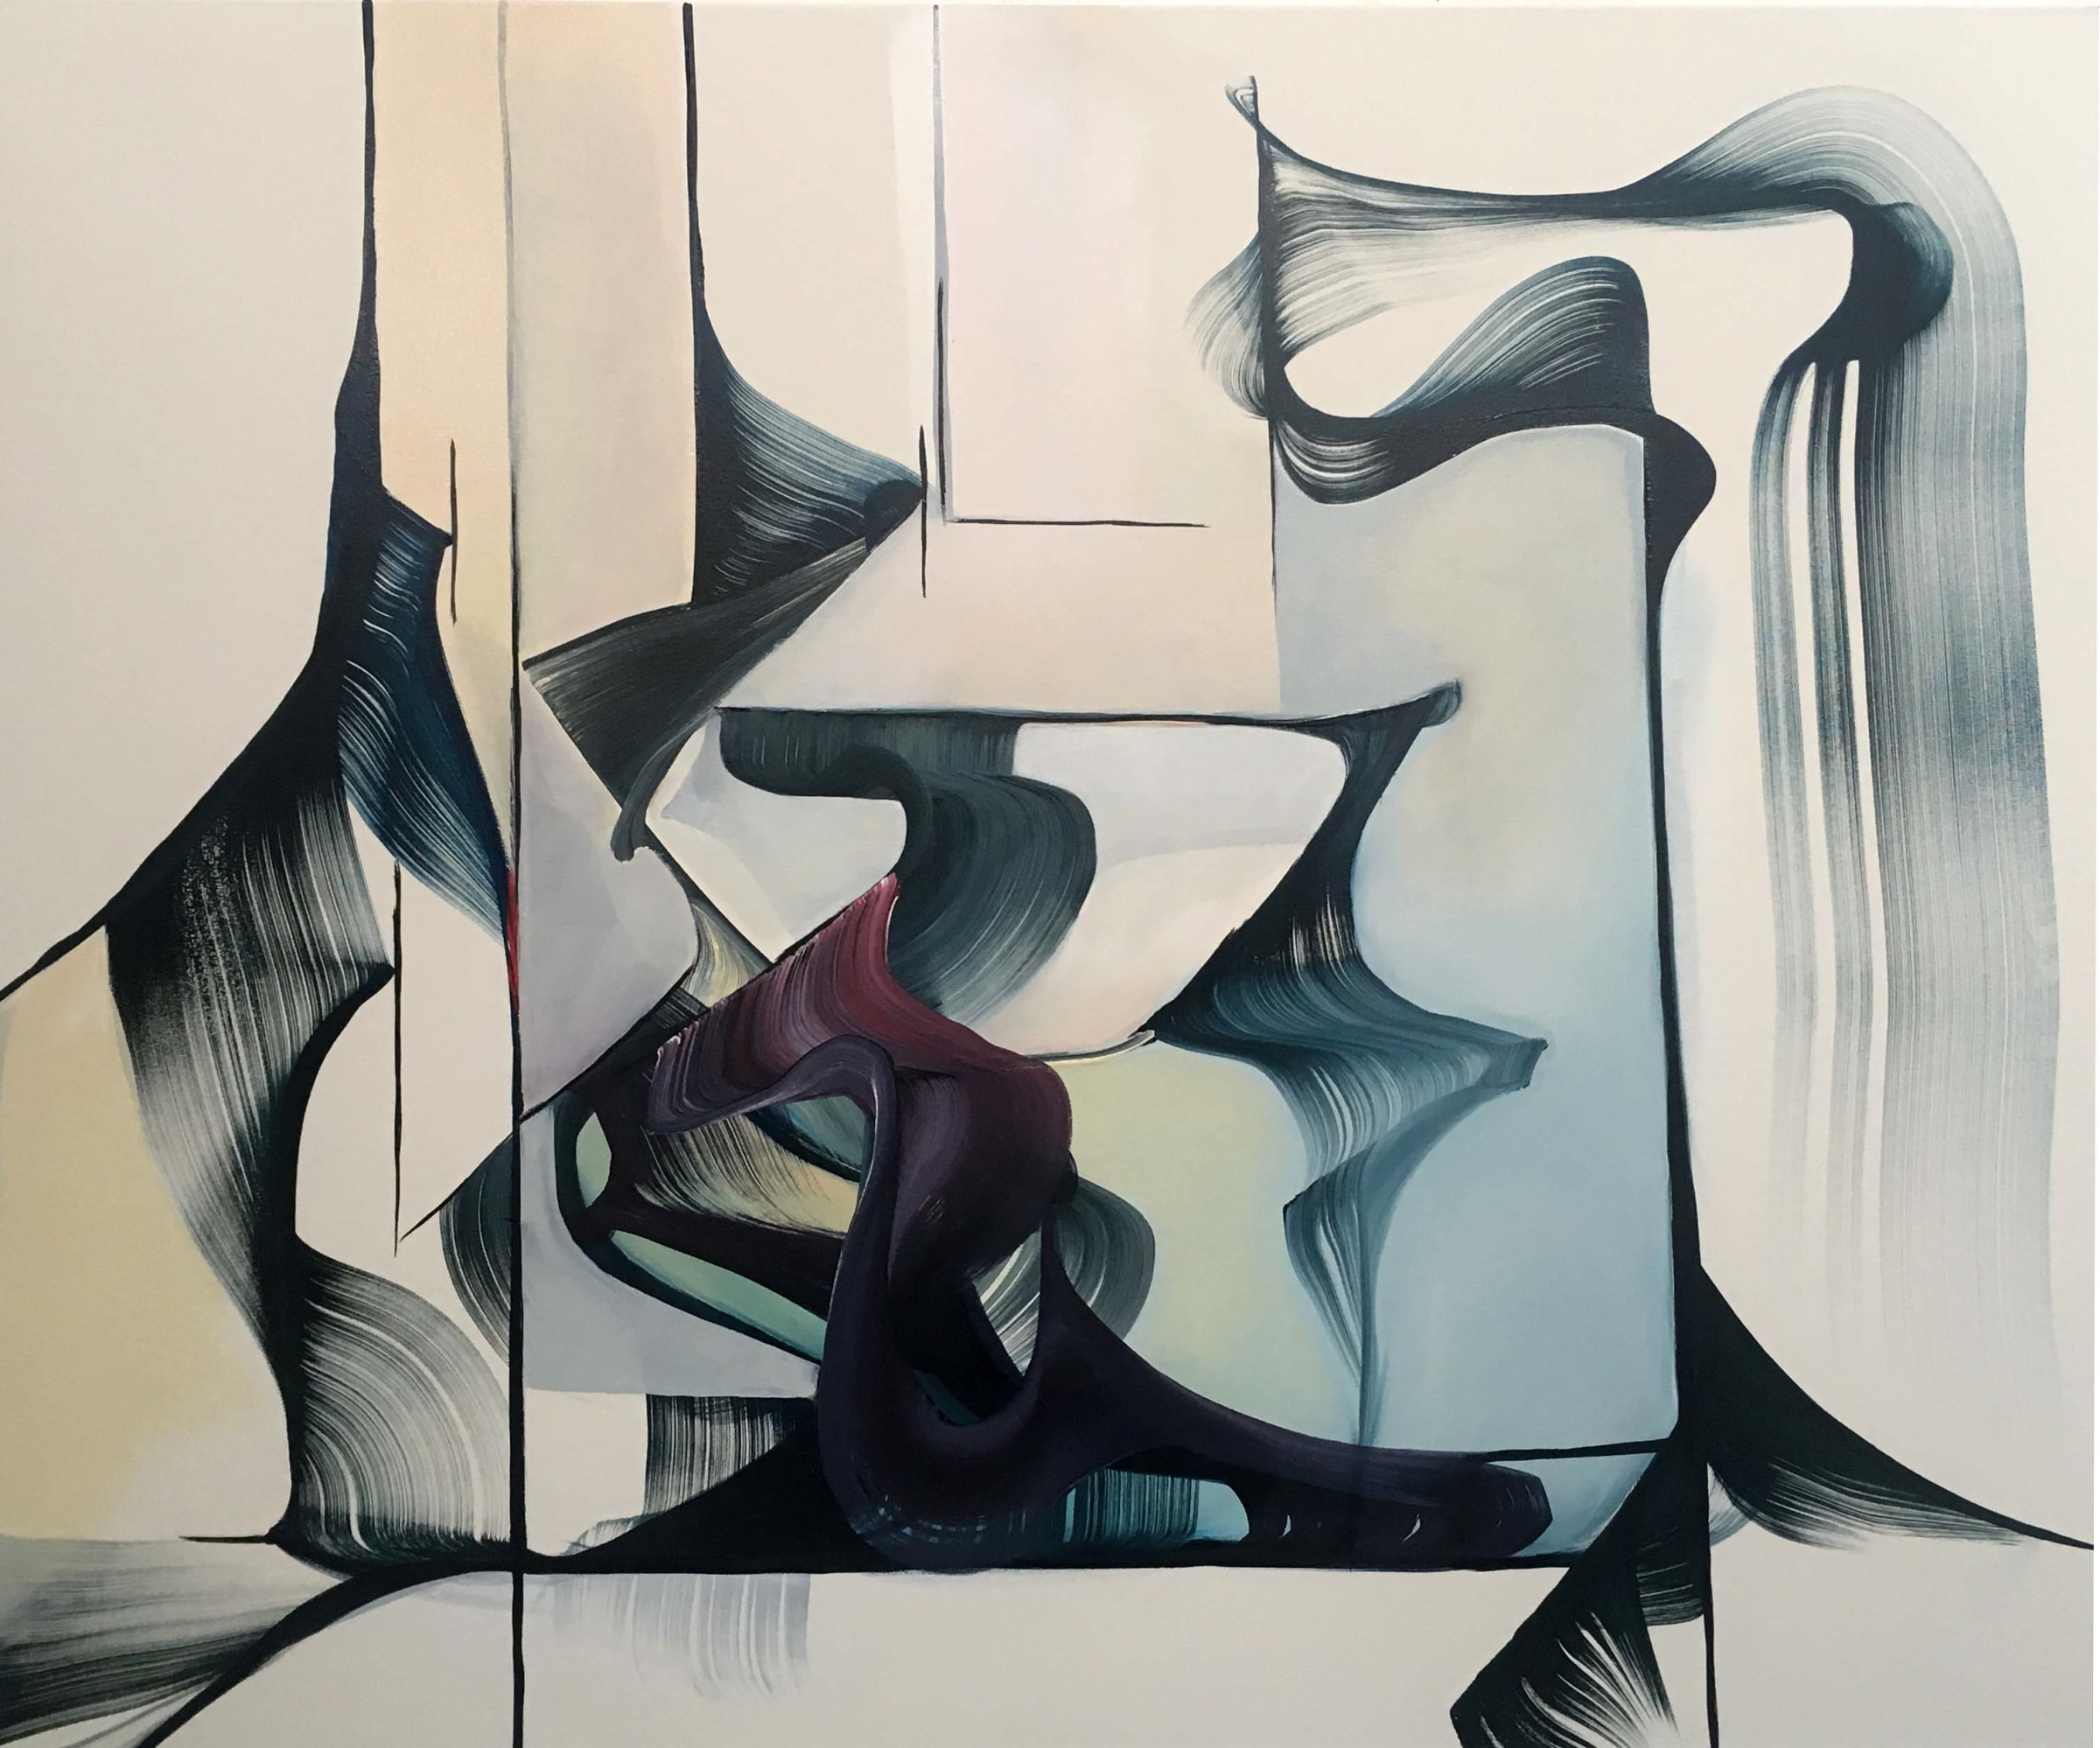 """<span class=""""link fancybox-details-link""""><a href=""""/artists/71-laina-terpstra/works/495-laina-terpstra-untitled/"""">View Detail Page</a></span><div class=""""artist""""><strong>Laina Terpstra</strong></div> <div class=""""title"""">Untitled </div> <div class=""""medium"""">Oil on Canvas</div> <div class=""""dimensions"""">48 x 60 inches <br /> SOLD</div>"""